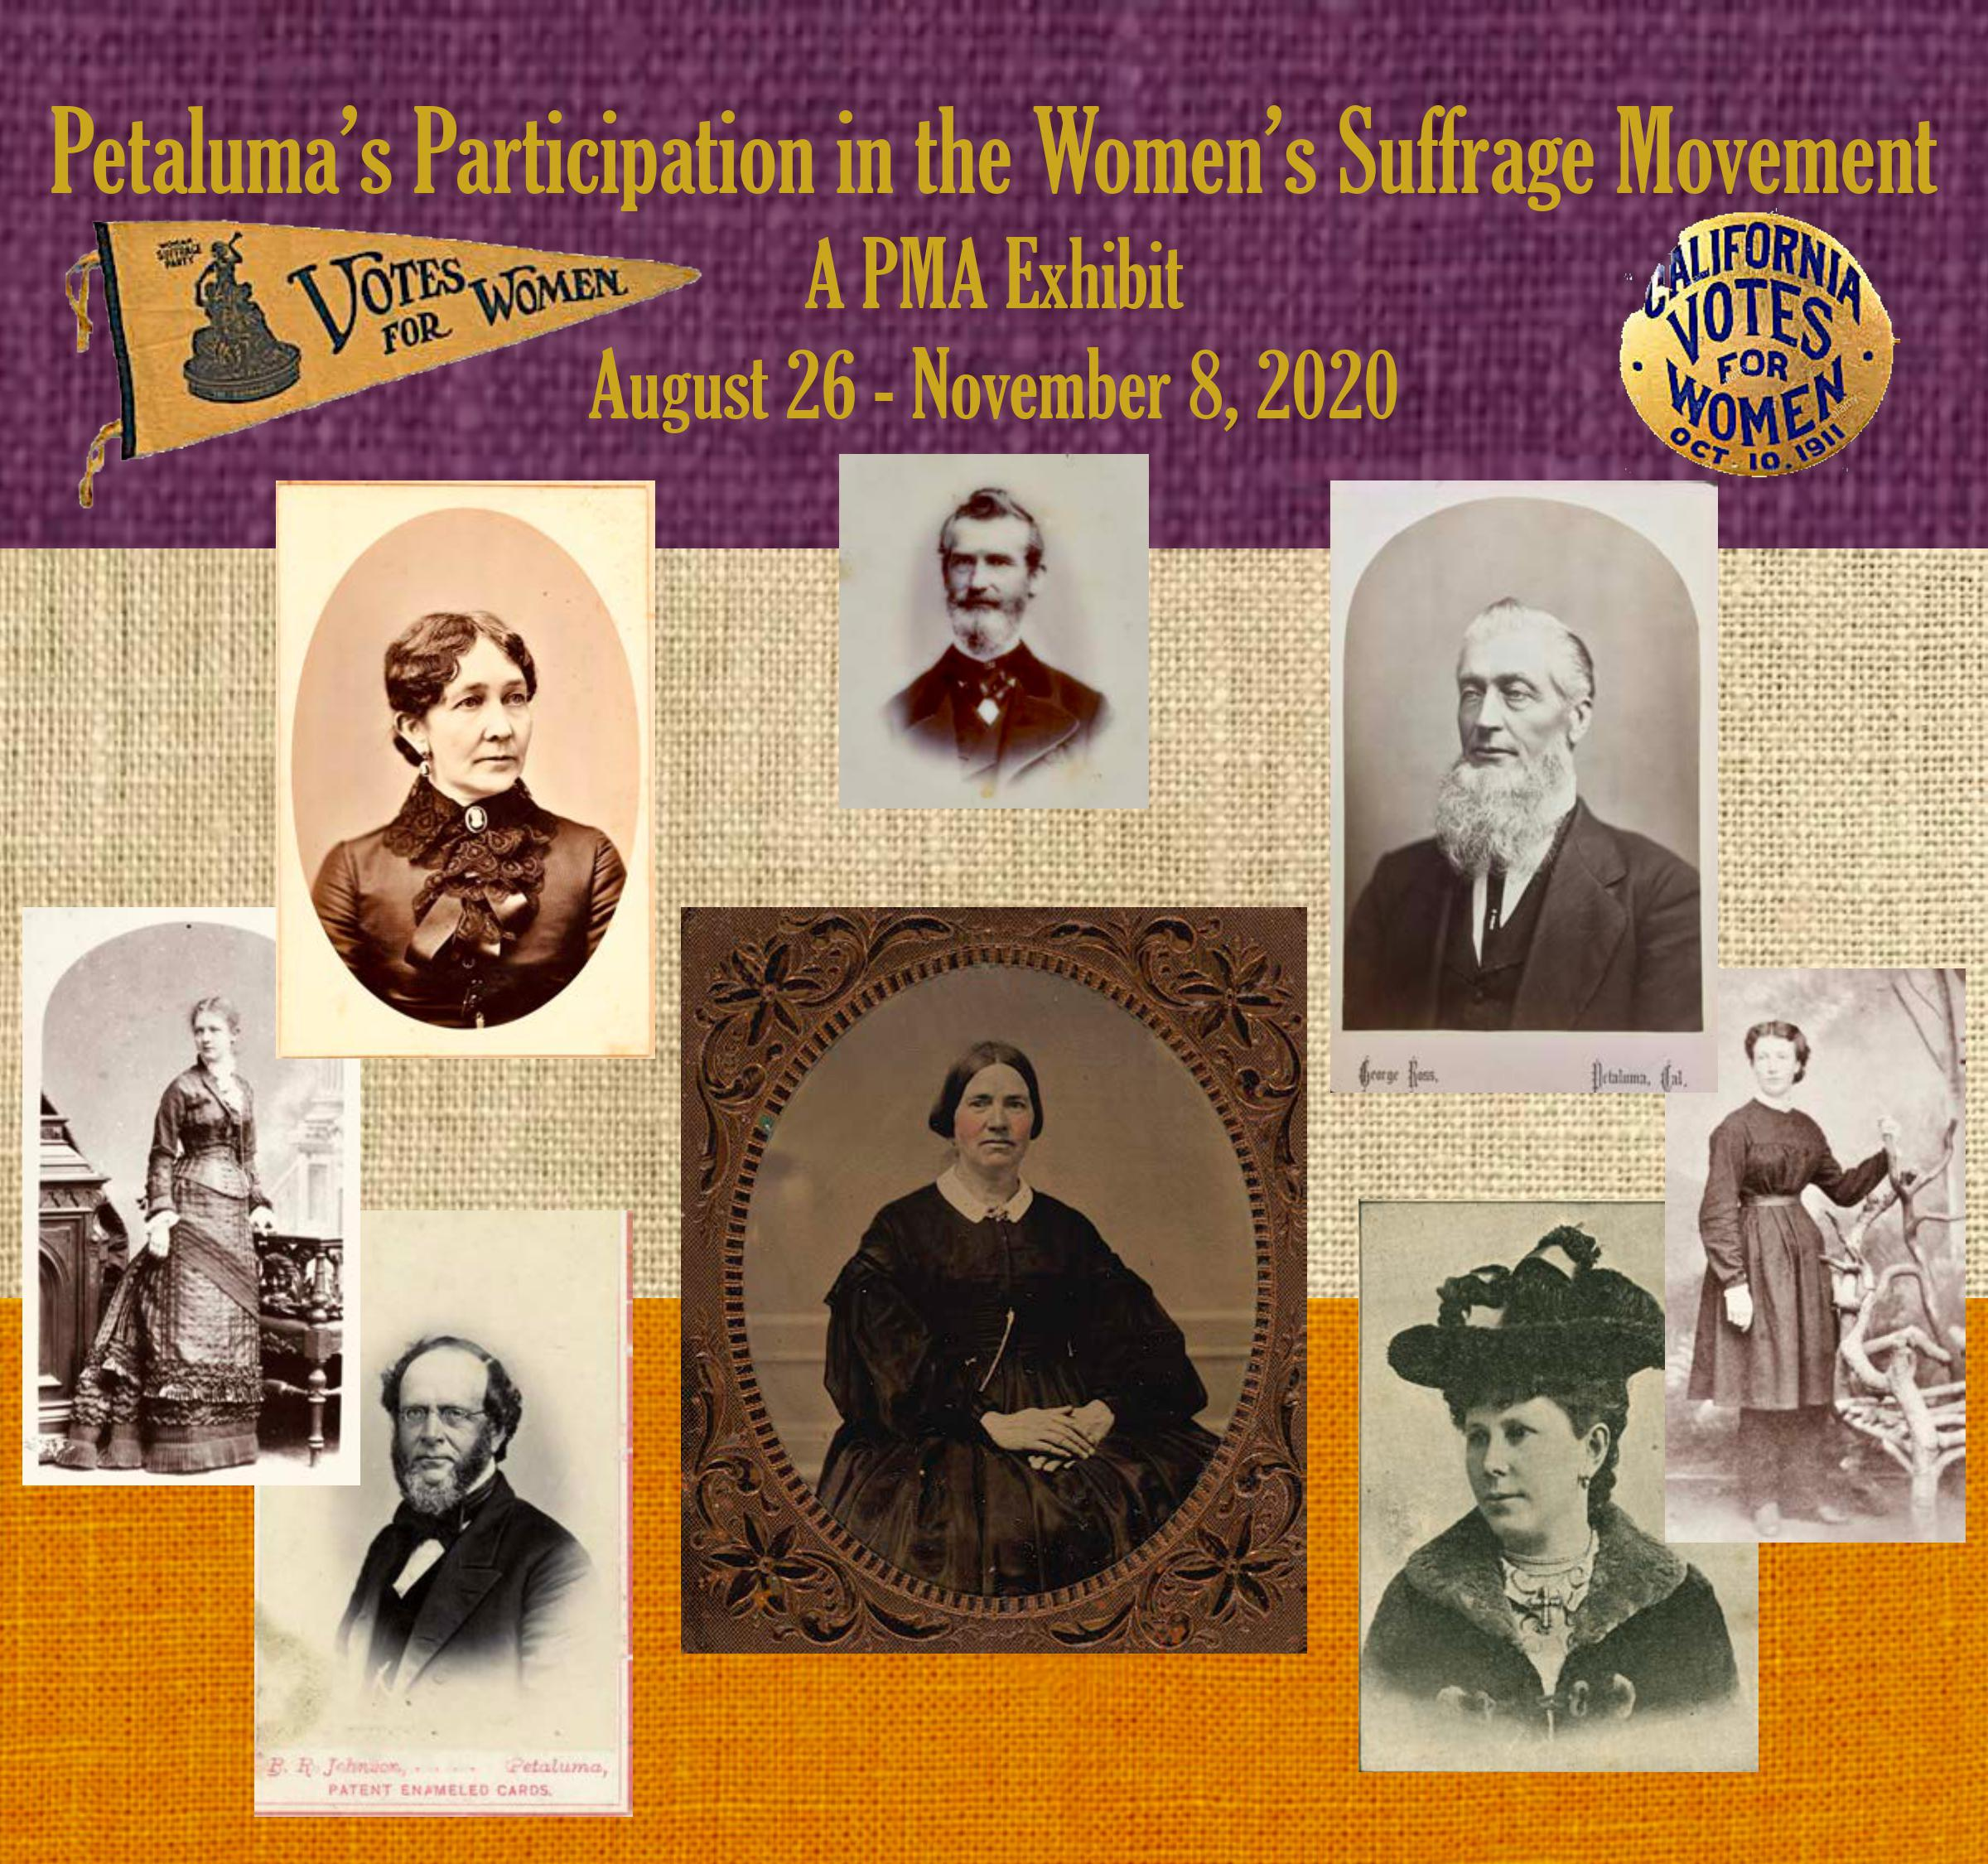 Petaluma's Participation in the Women's Suffrage Movement, Petaluma Library and Historical Museum